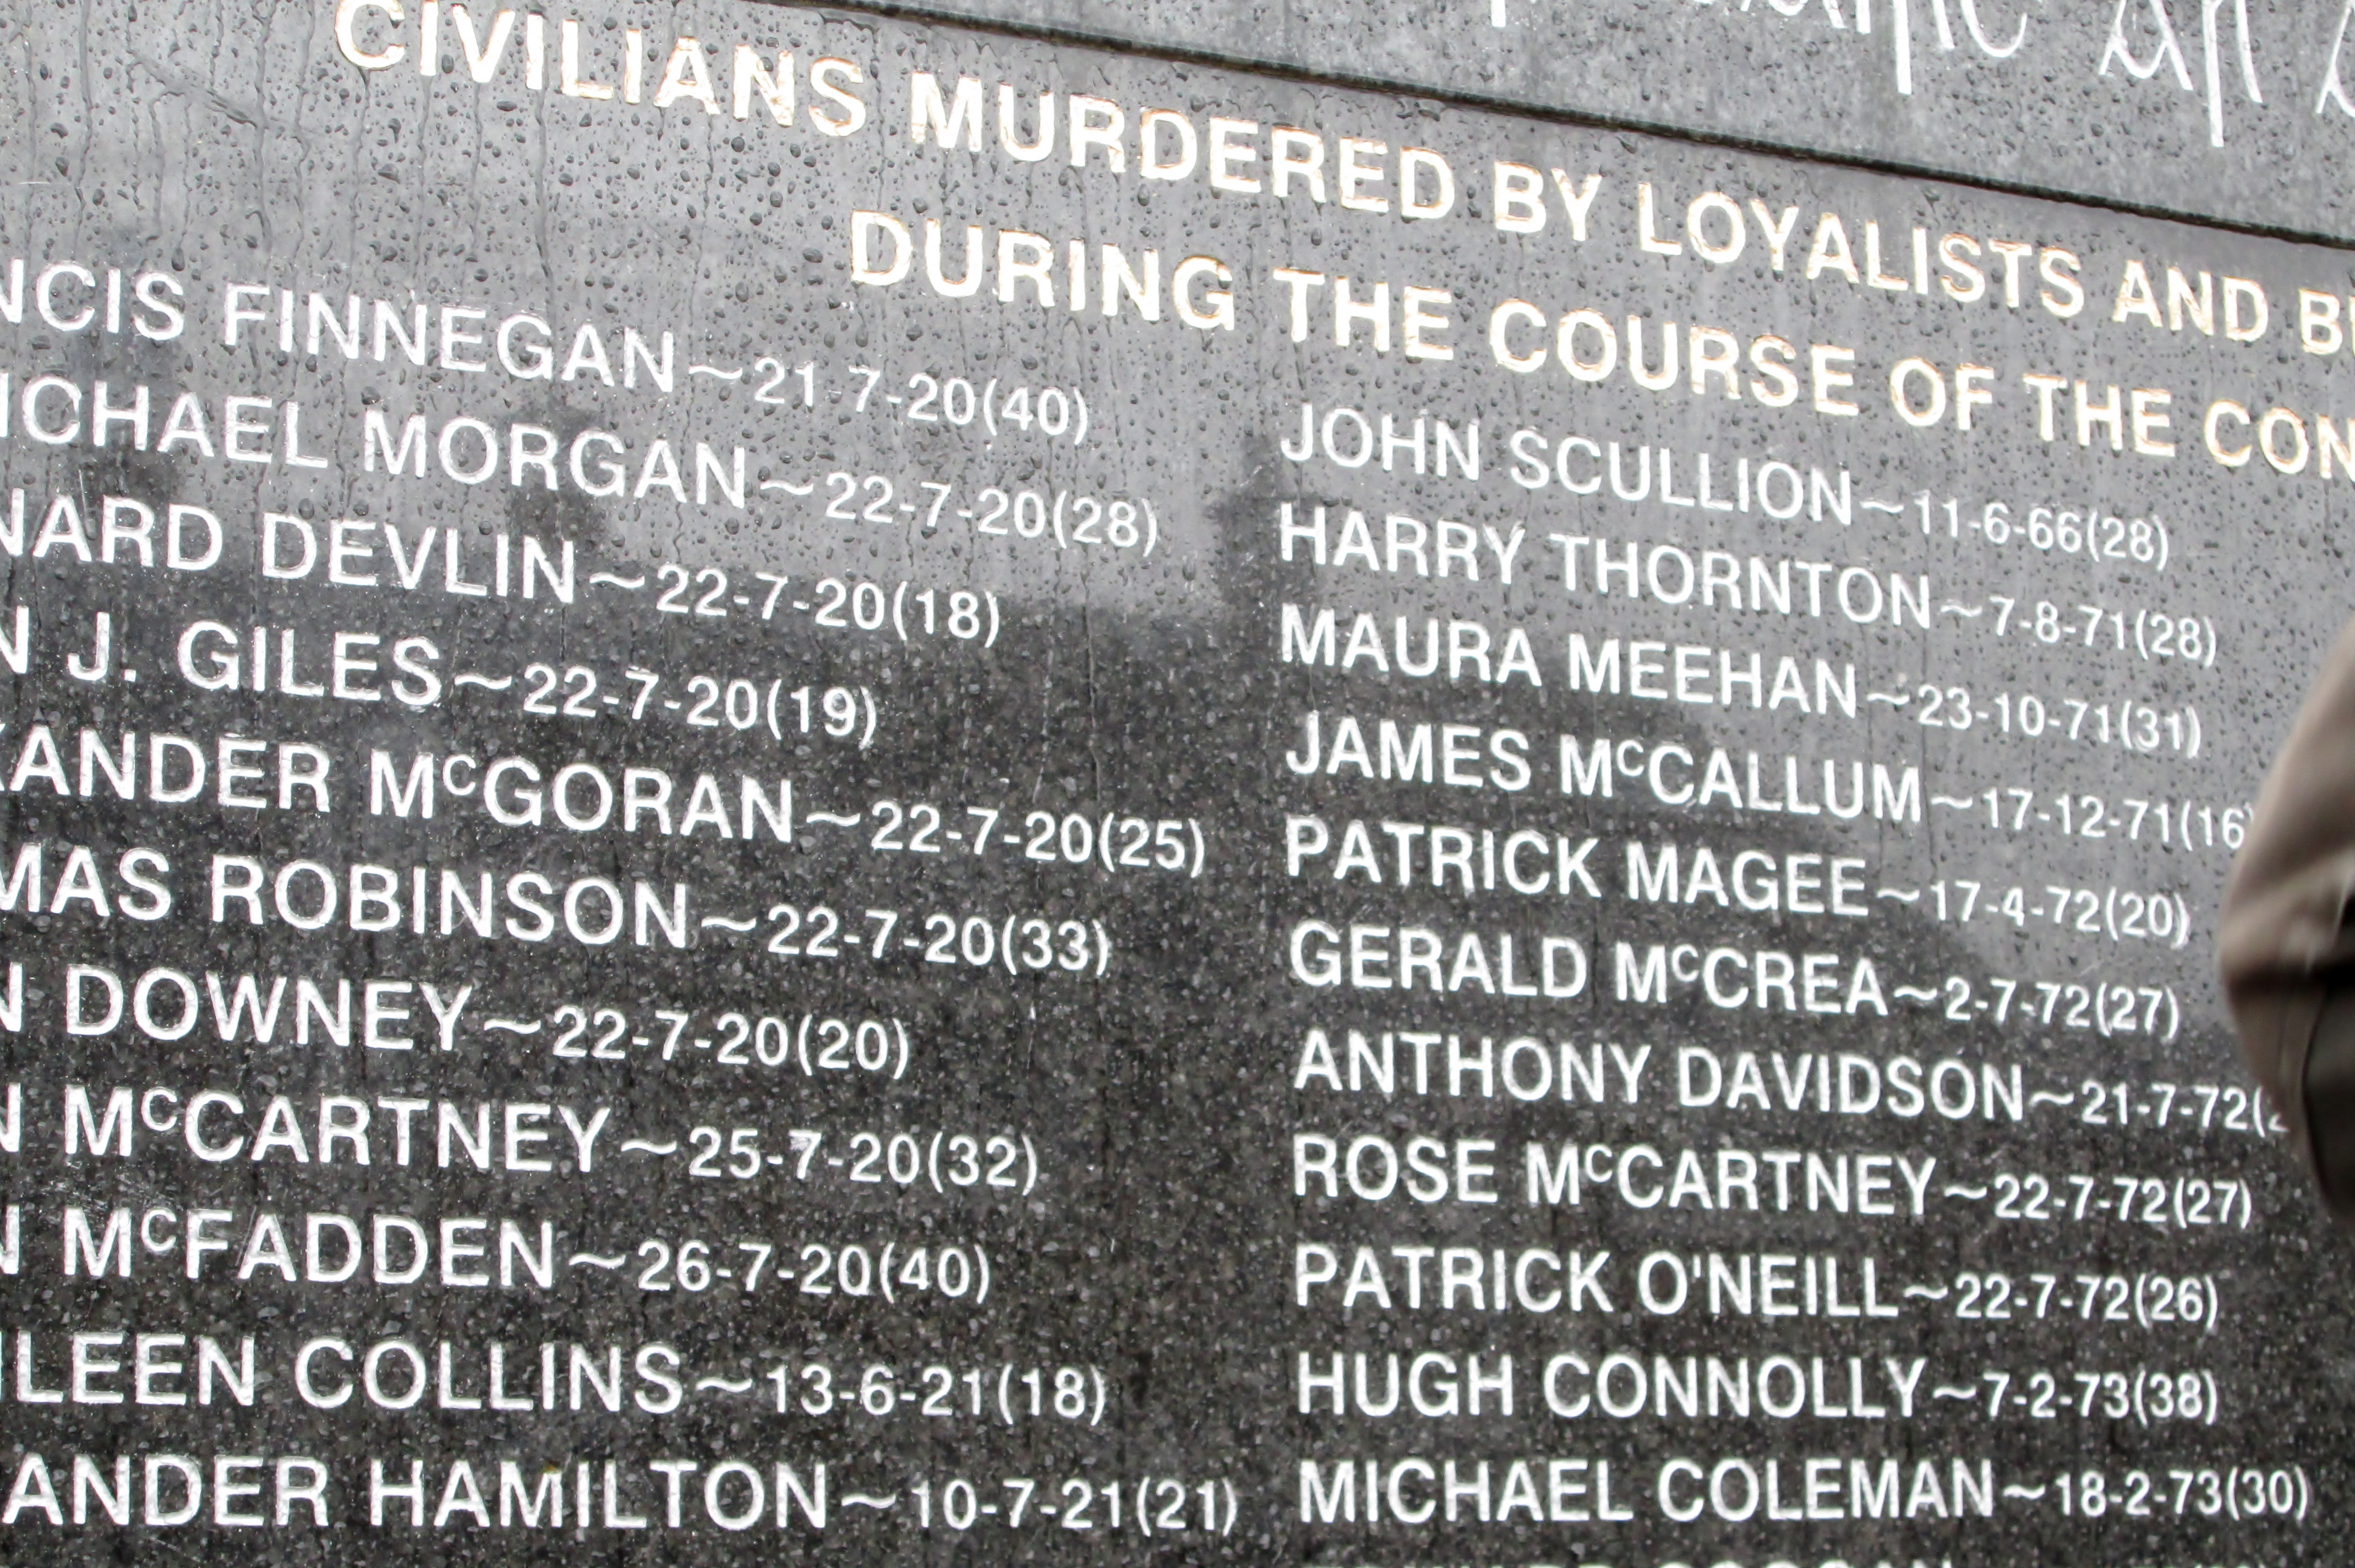 A memorial in Belfast to victims of terrorism. By Ins1122.